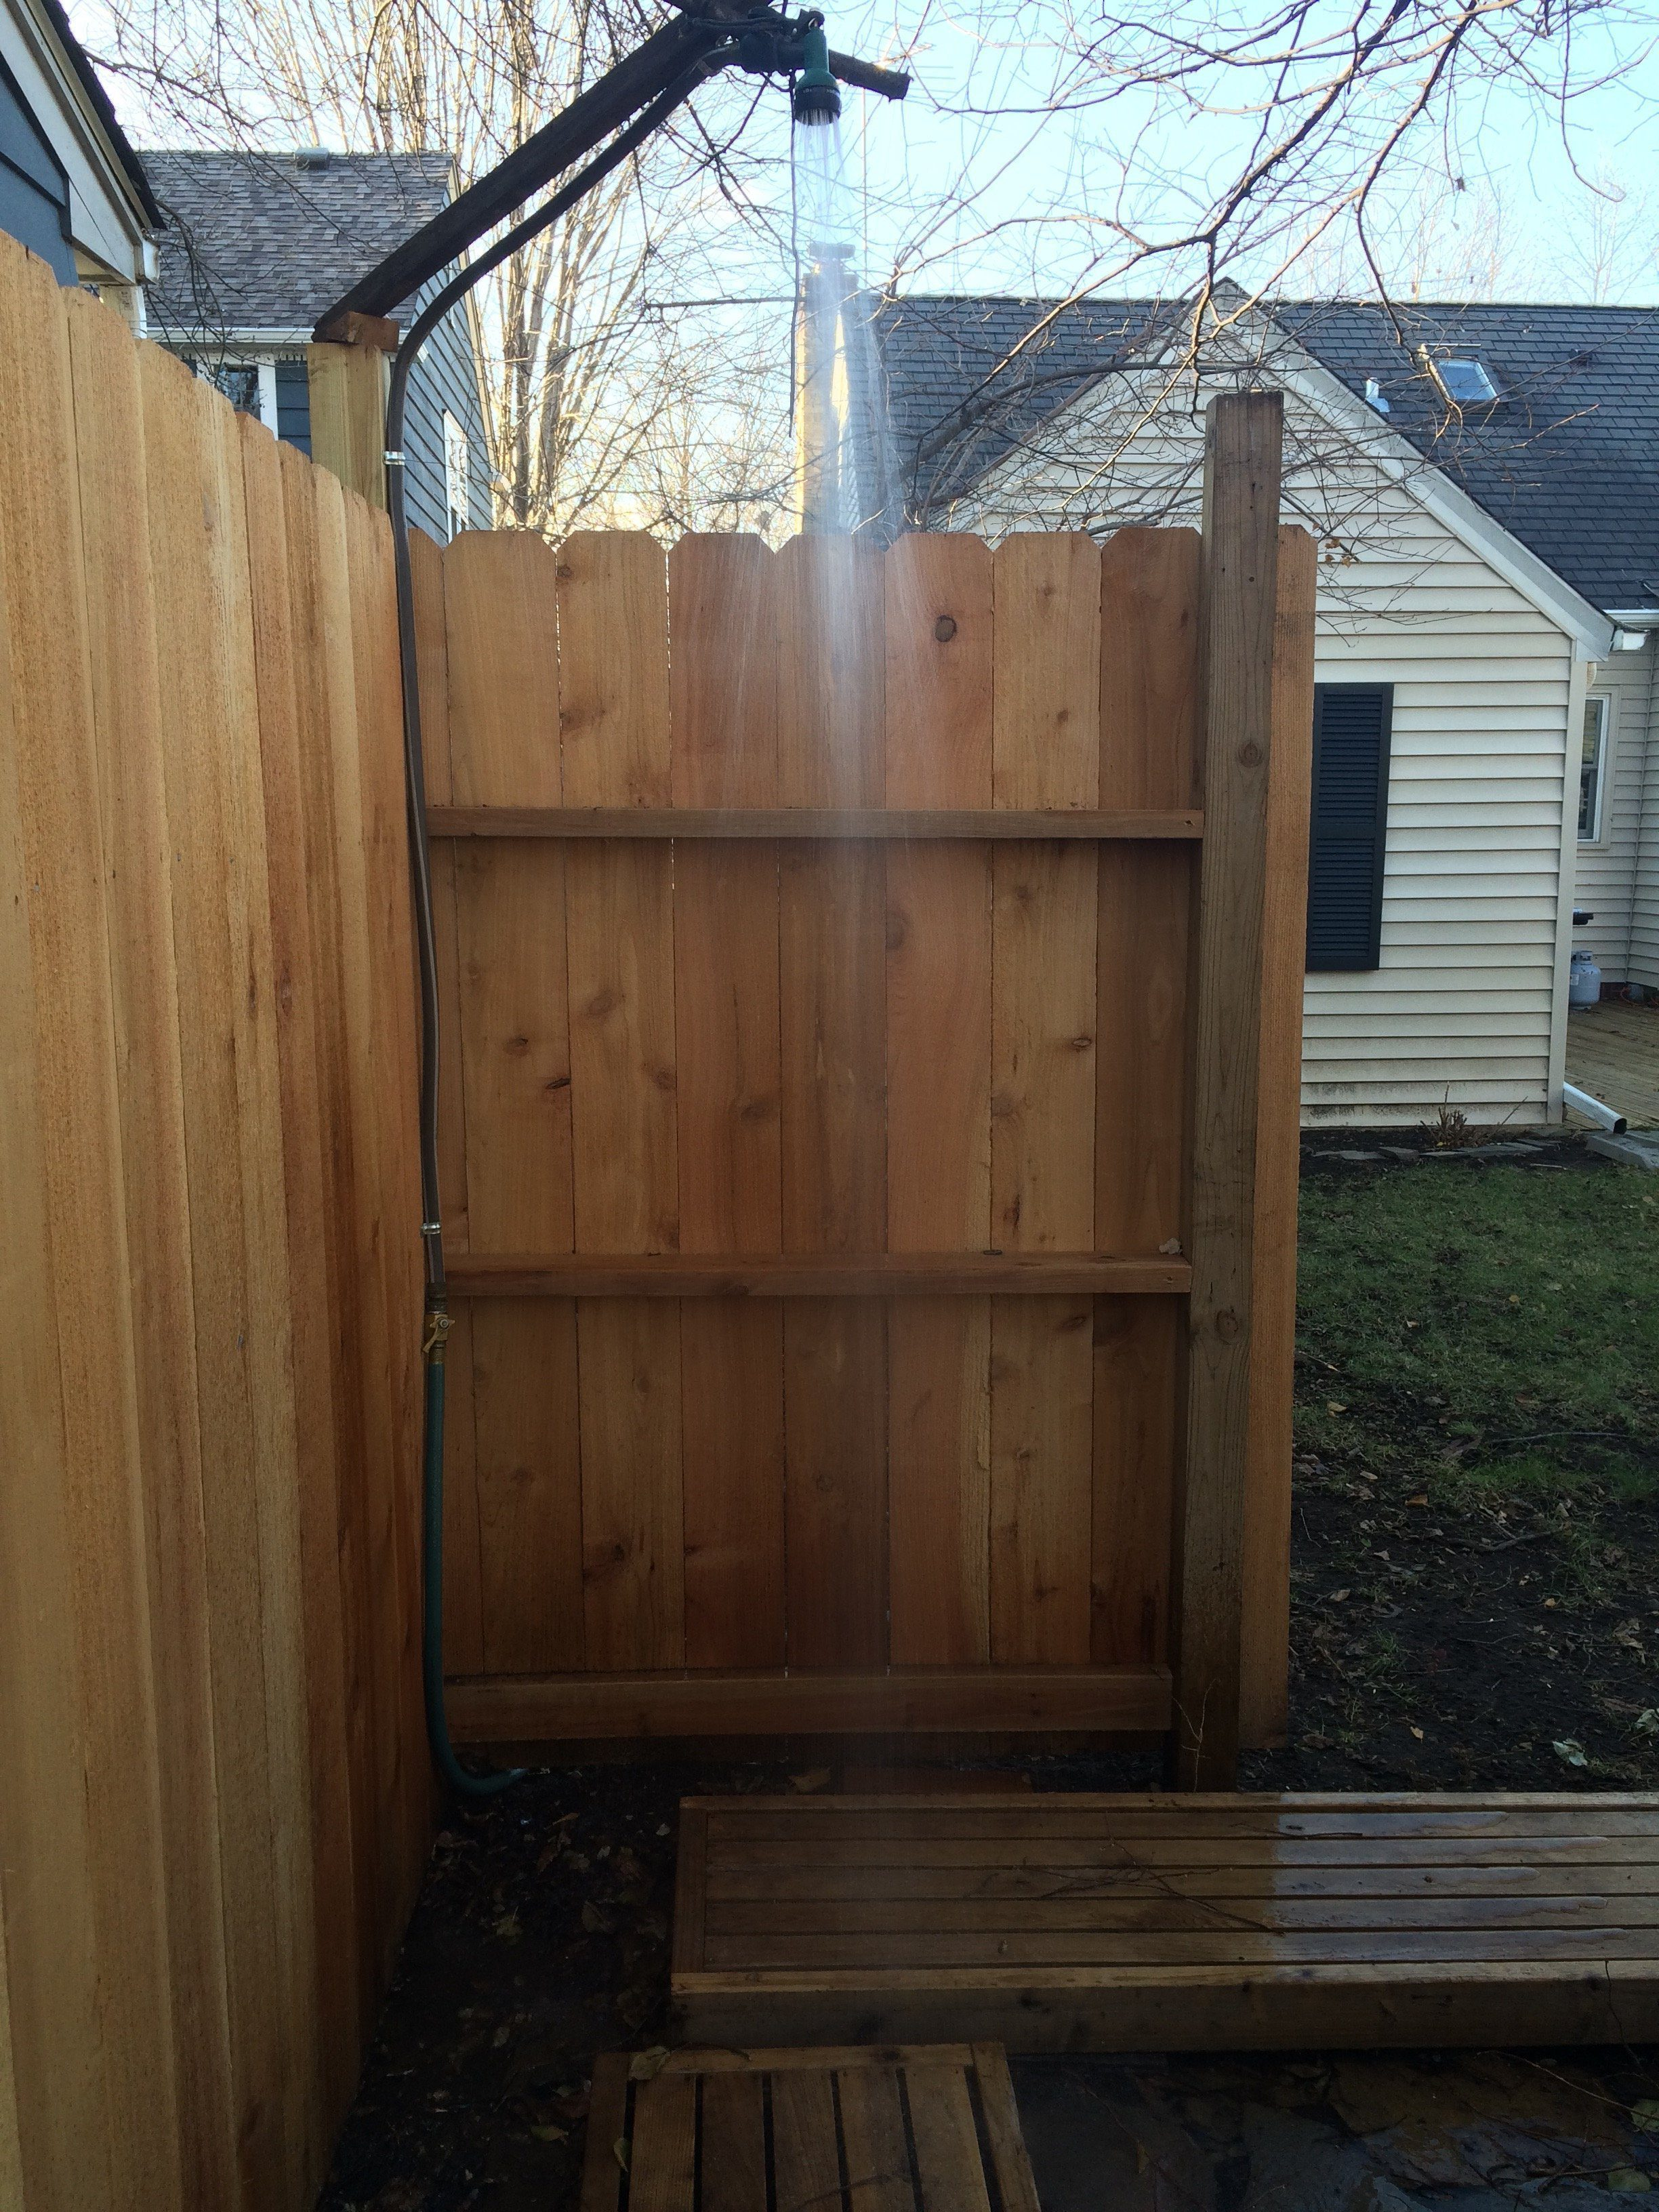 An Outdoor Shower For A Backyard Sauna.